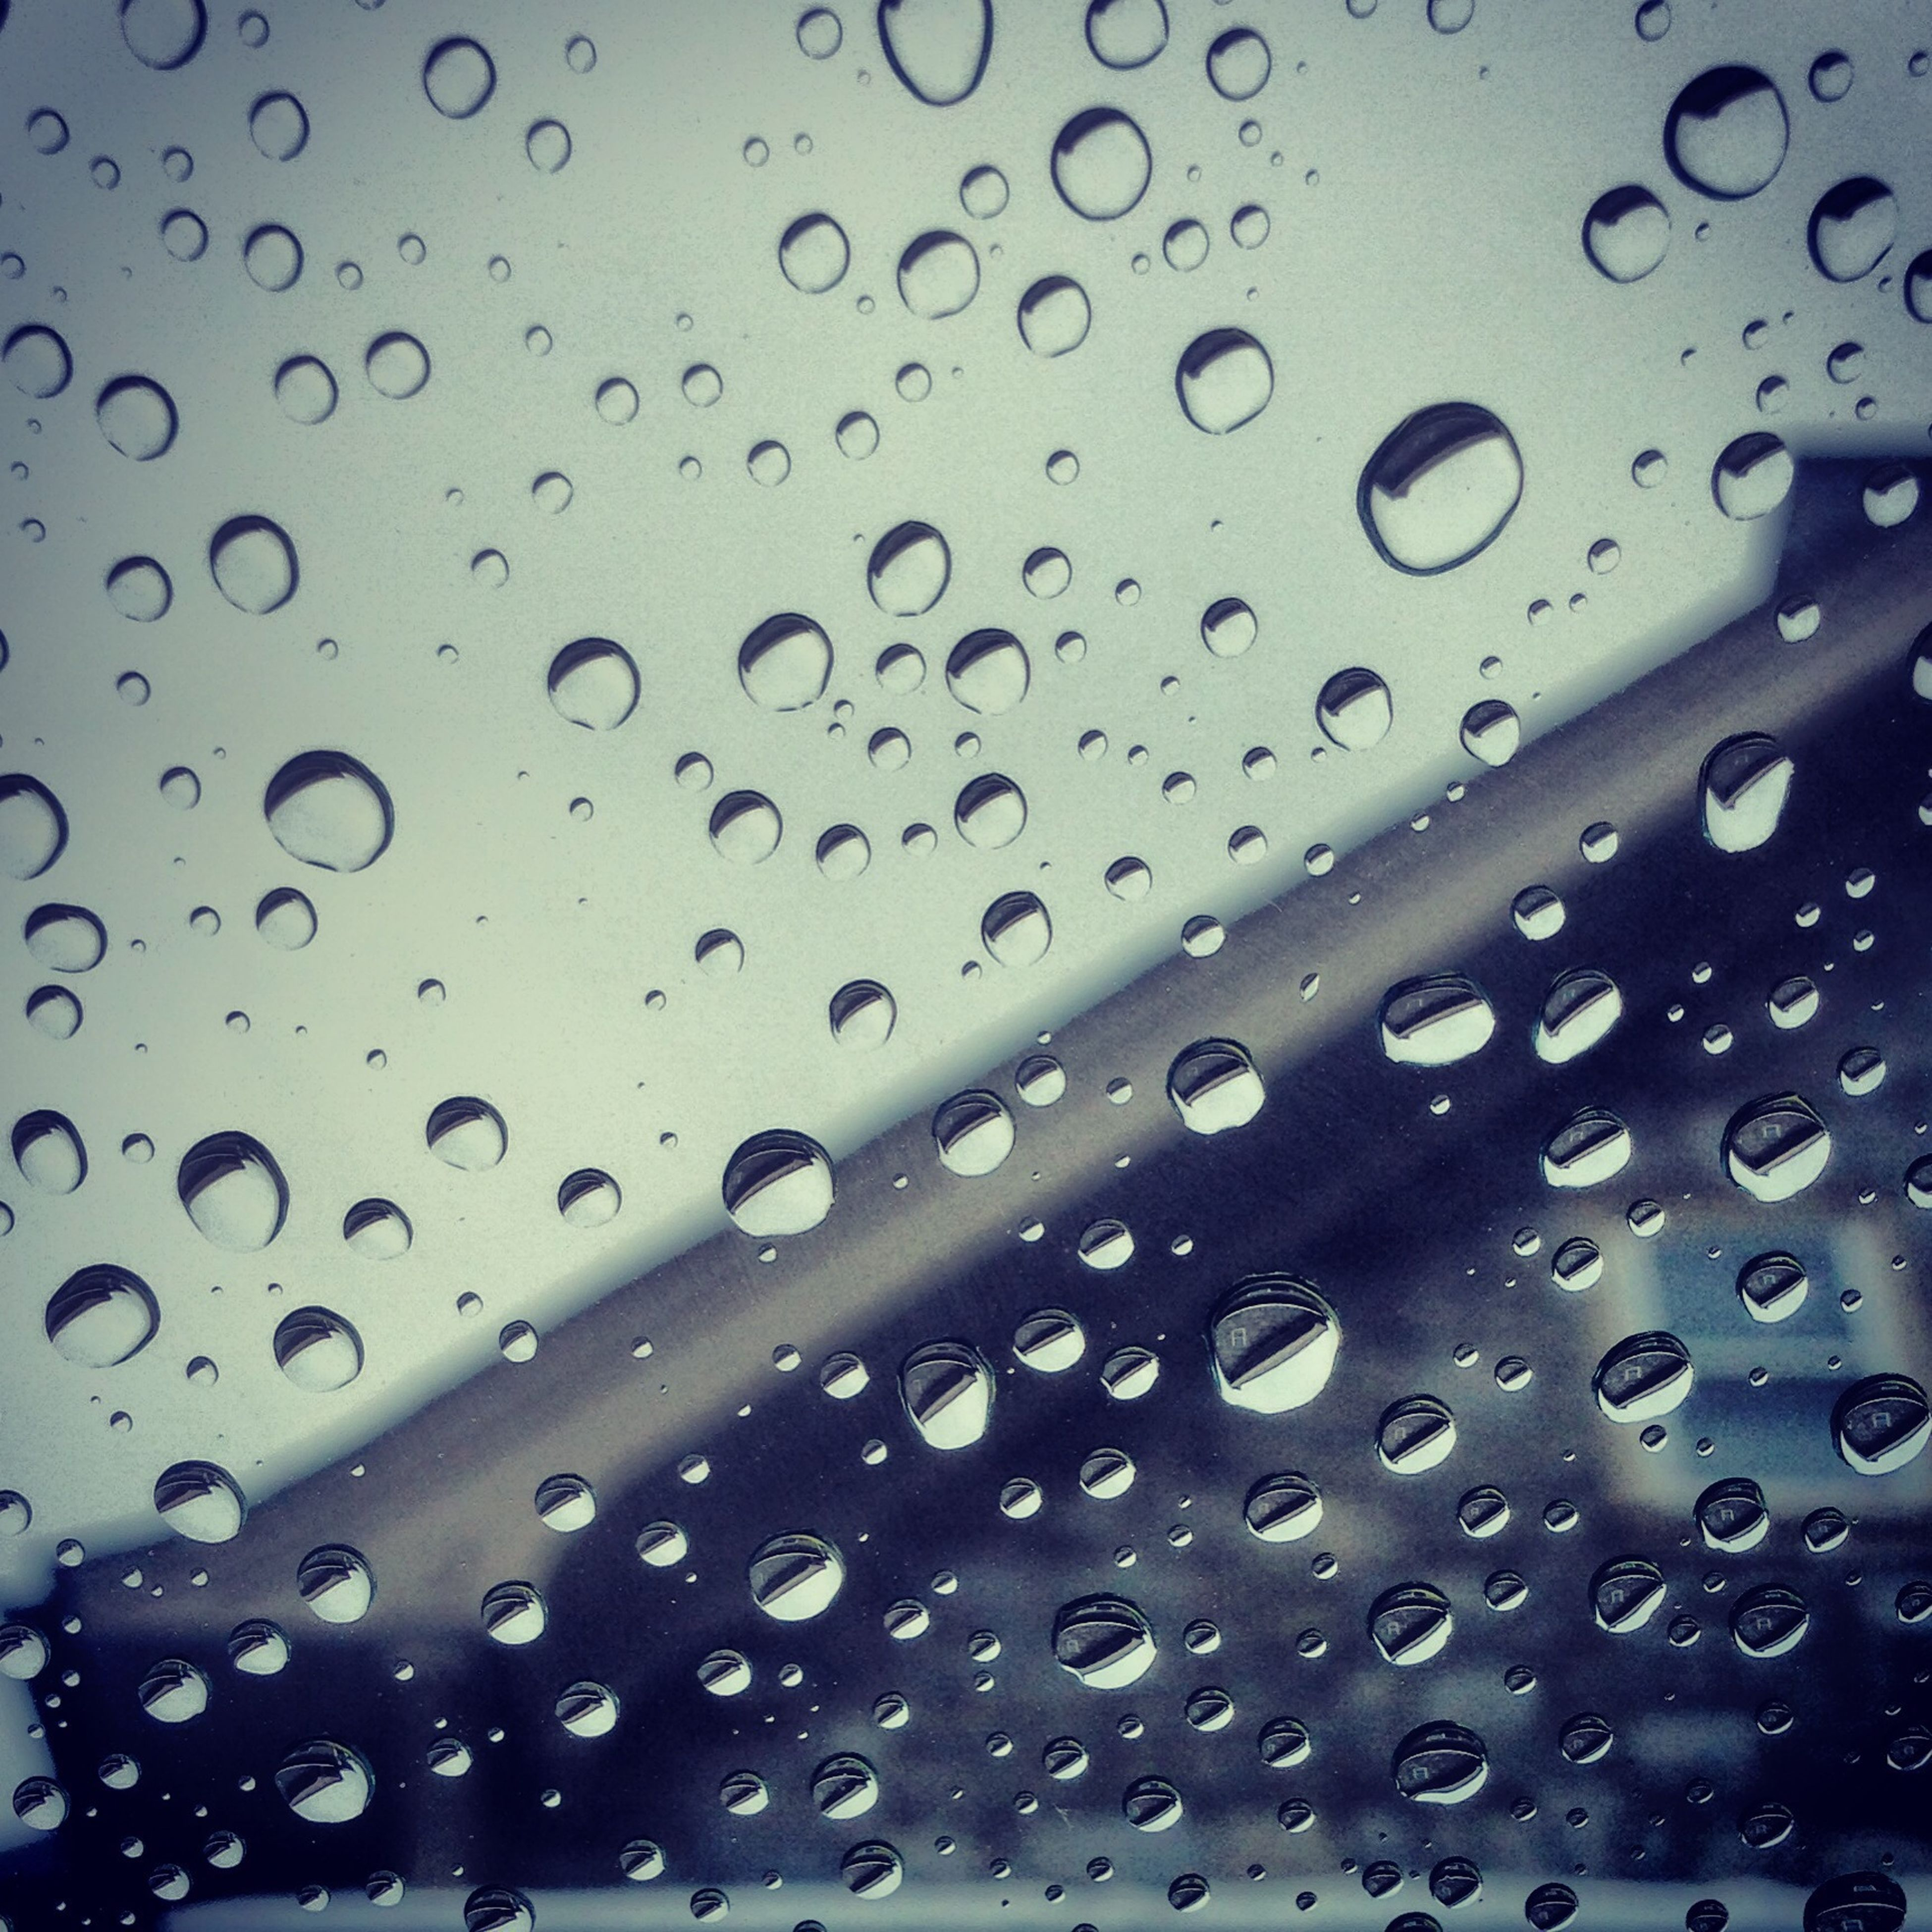 drop, wet, full frame, backgrounds, rain, water, window, weather, raindrop, indoors, transparent, glass - material, season, close-up, glass, sky, no people, droplet, monsoon, nature